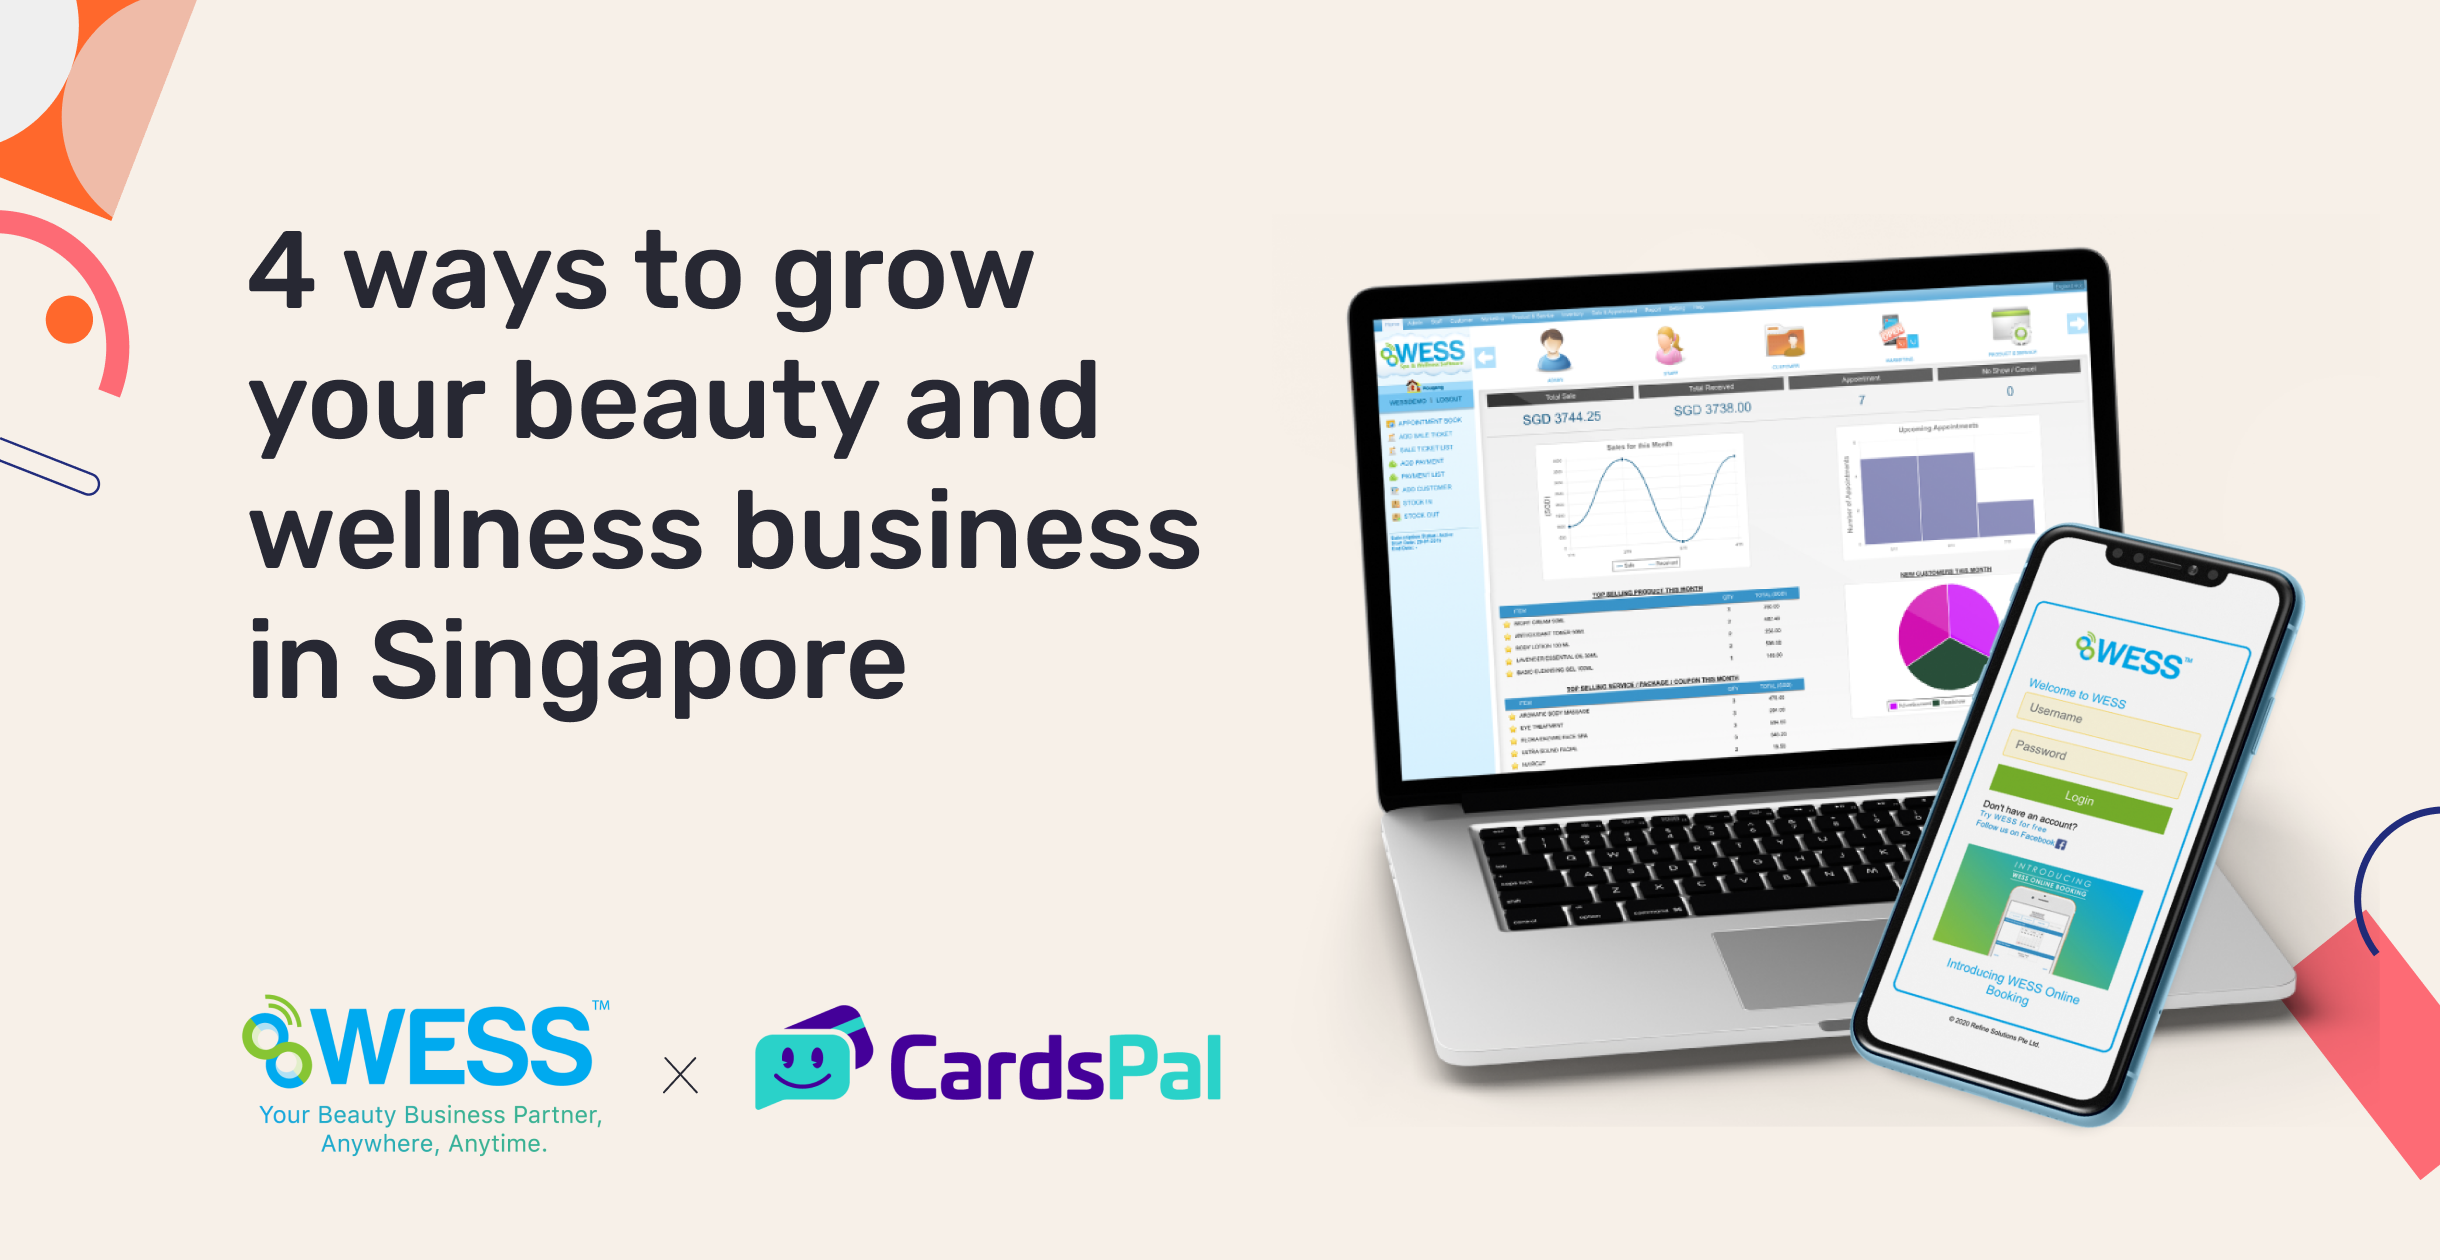 4 Ways to grow your beauty and wellness business in Singapore